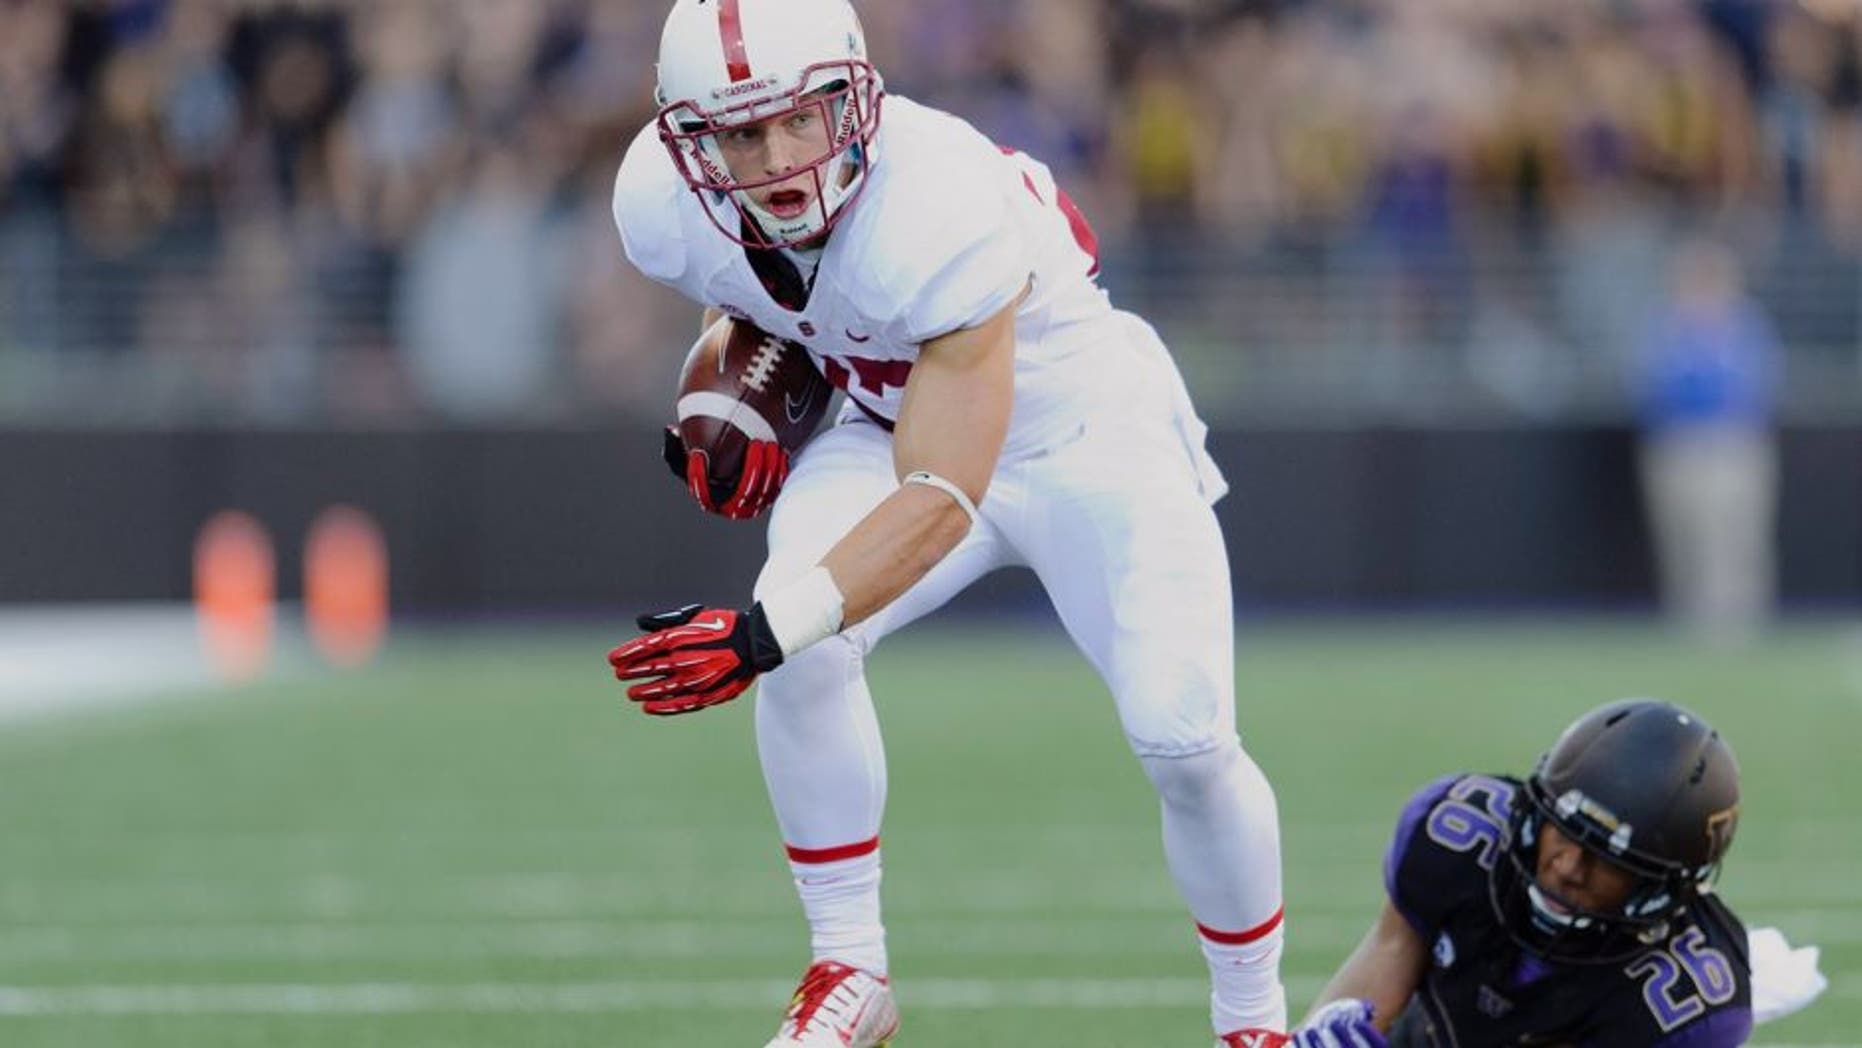 Sep 27, 2014; Seattle, WA, USA; Stanford Cardinal running back Christian McCaffrey (27) carries the ball against the Washington Huskies during the first half at Husky Stadium. Stanford defeated Washington 20-13. Mandatory Credit: Steven Bisig-USA TODAY Sports